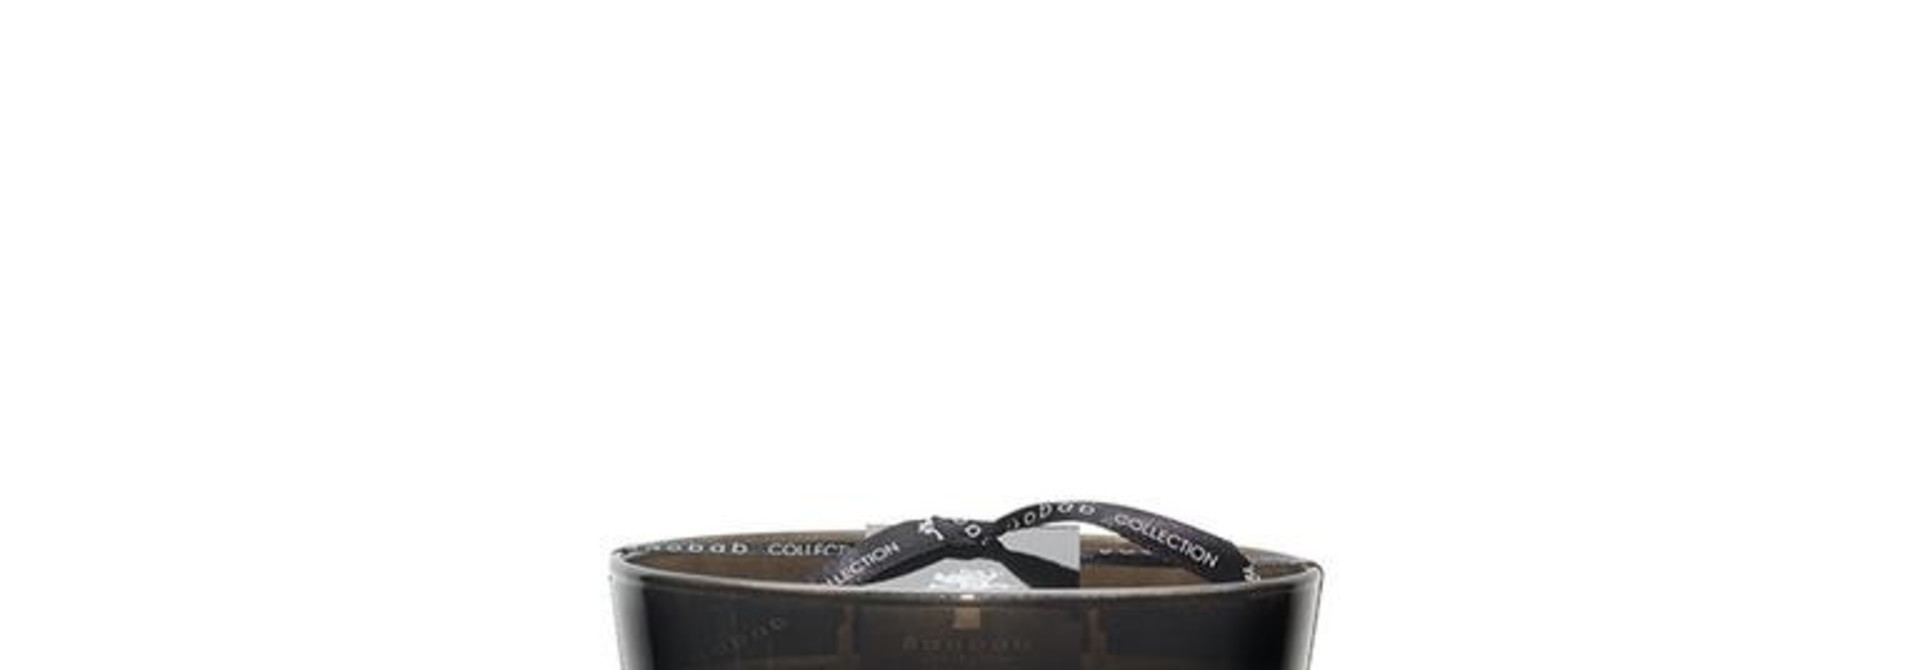 BAOBAB COLLECTION -  Candle Encre de Chine Max 16